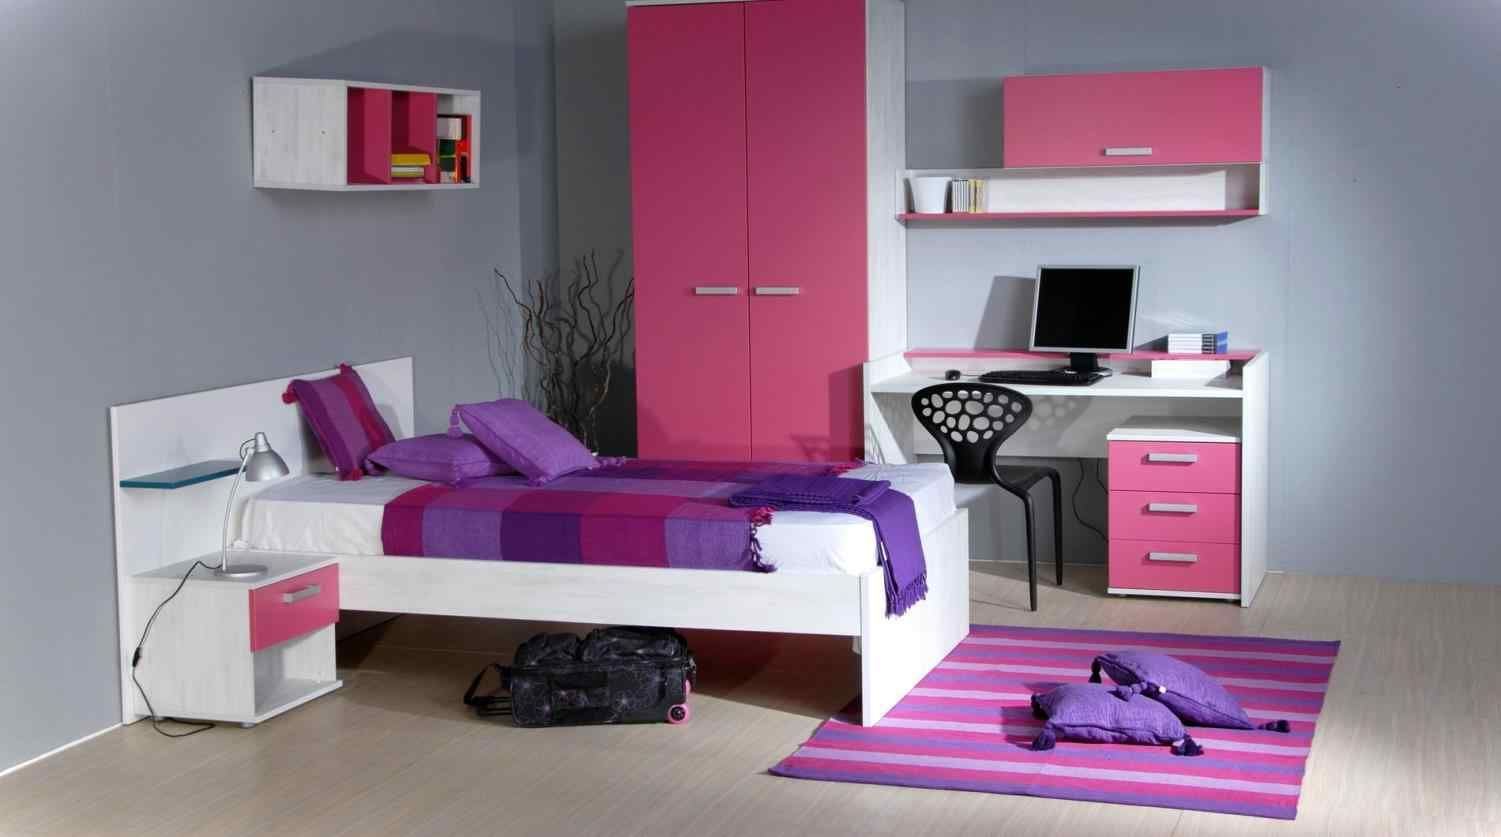 New Post Modern House Interior Design Bedroom For Kids Has Been Published On Ash999